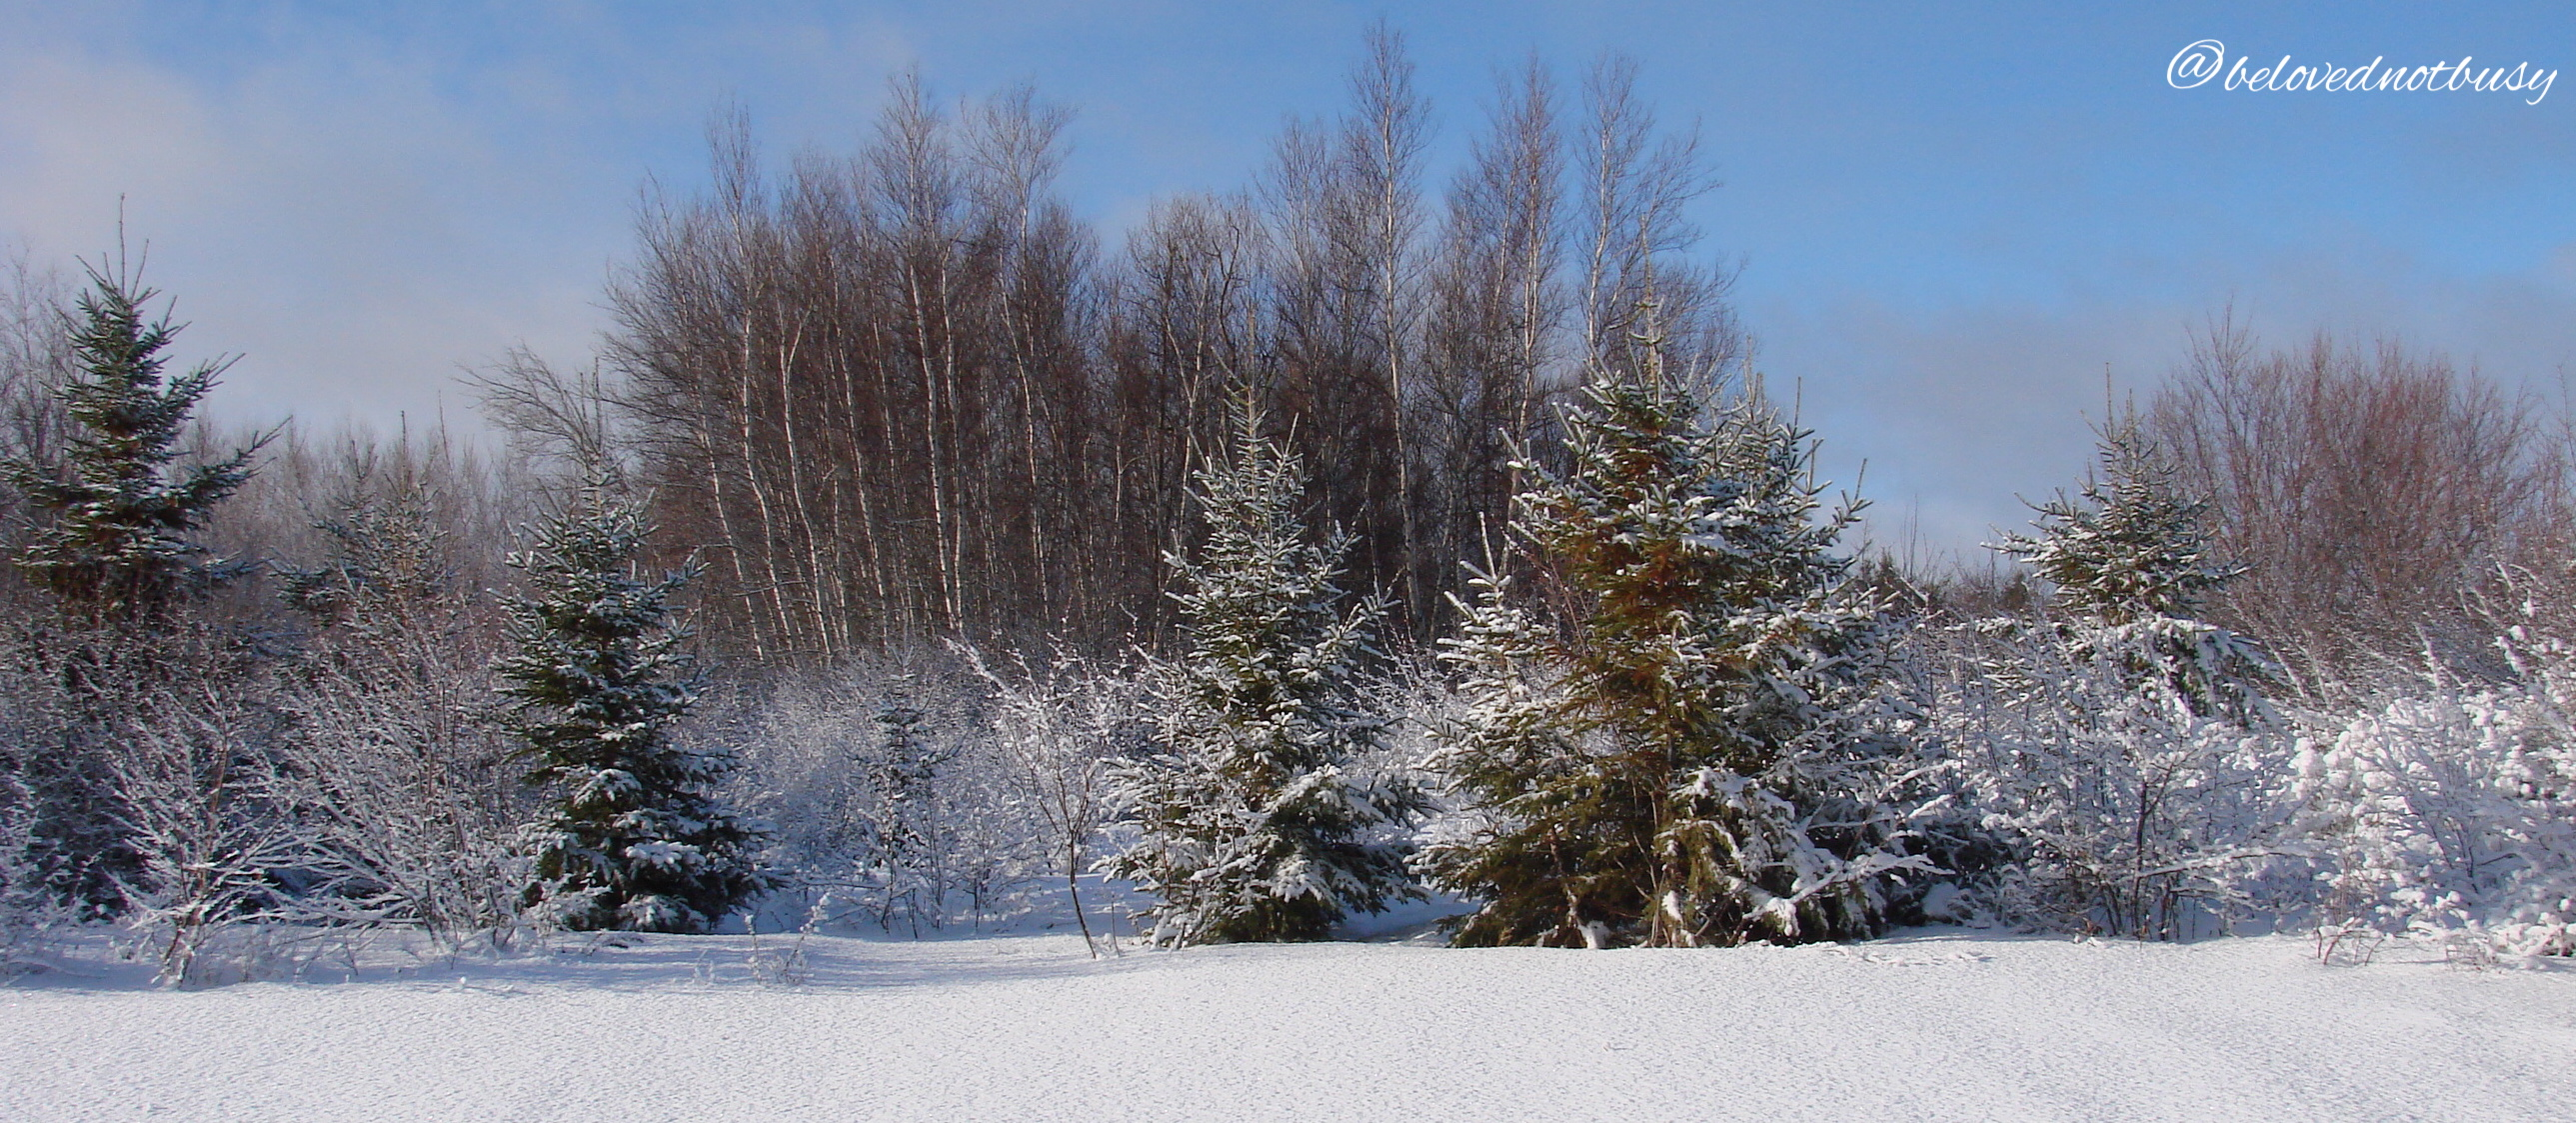 The back of our soon-to-be Christmas tree field after the first real snow of the year.